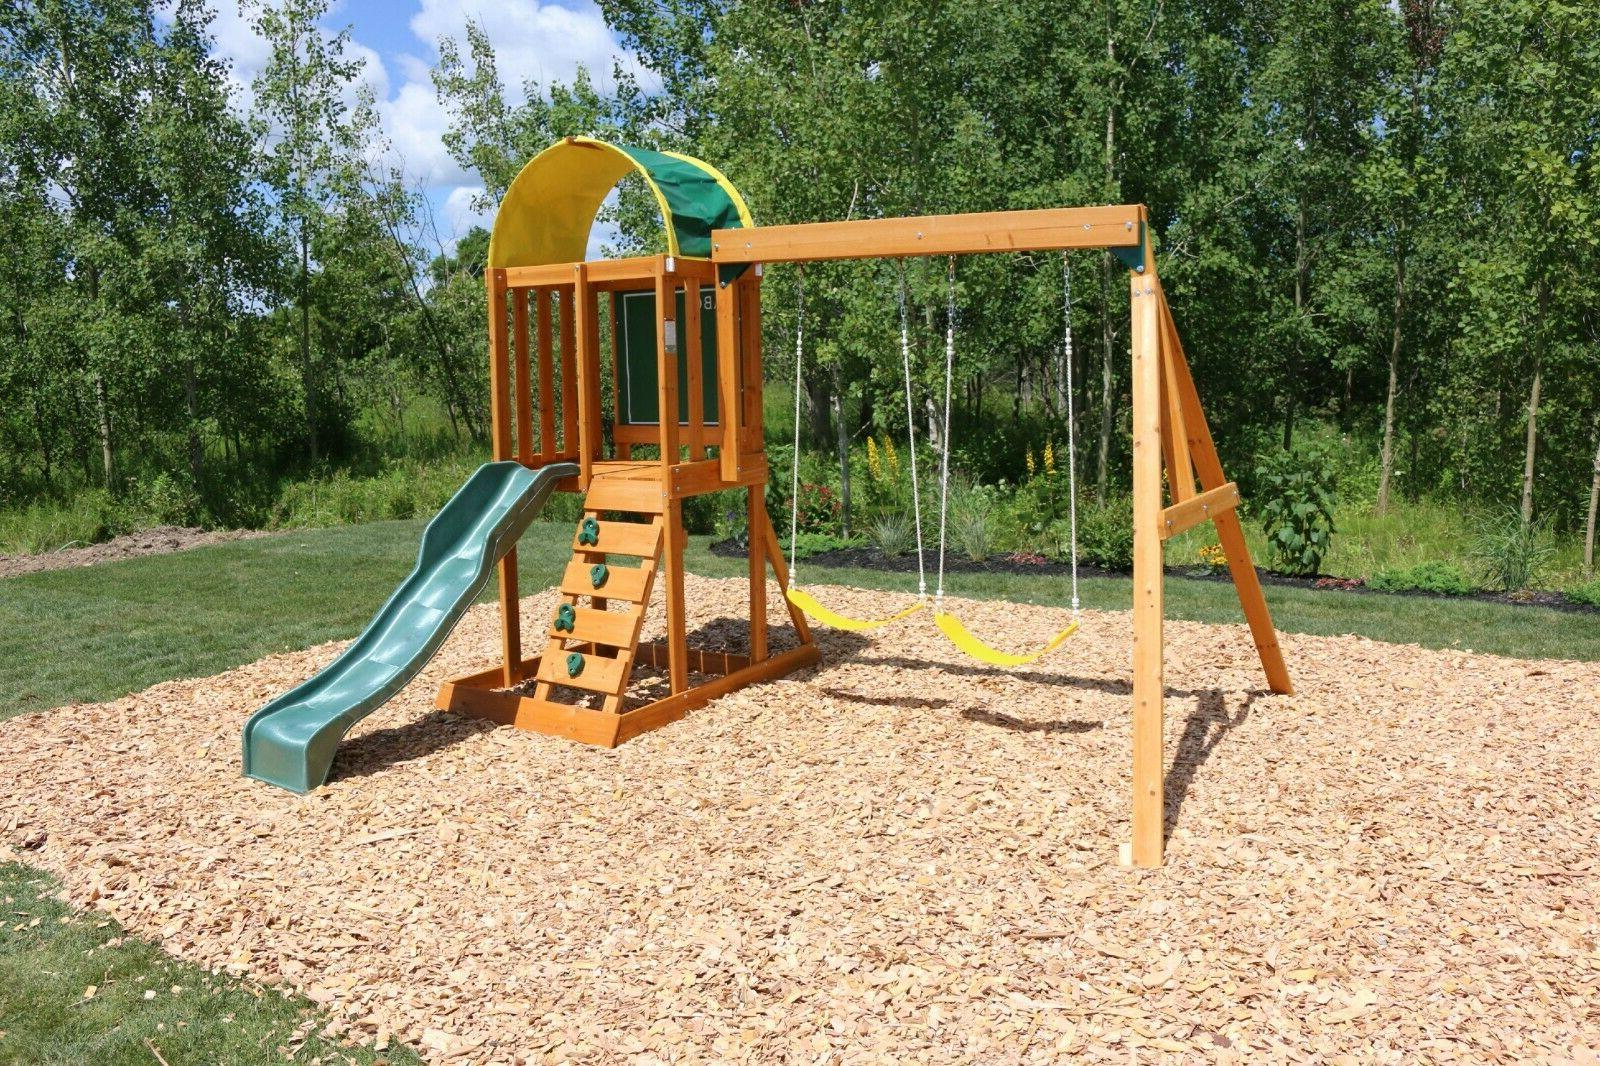 Playground Swing Set Wooden Playset & Clubhouse Kids